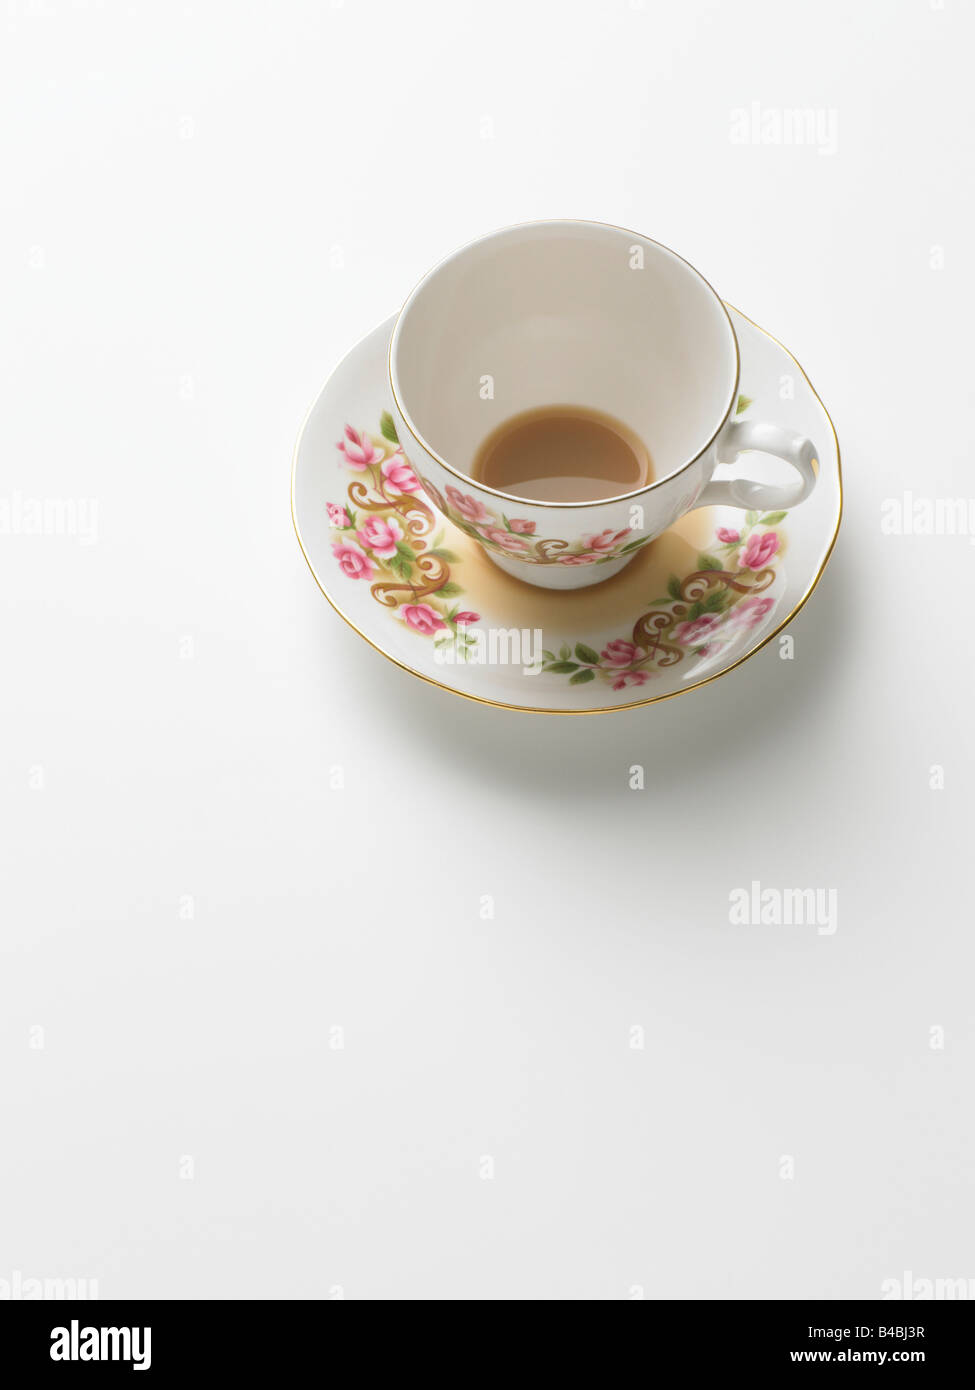 Floral tea cup on plain background - Stock Image